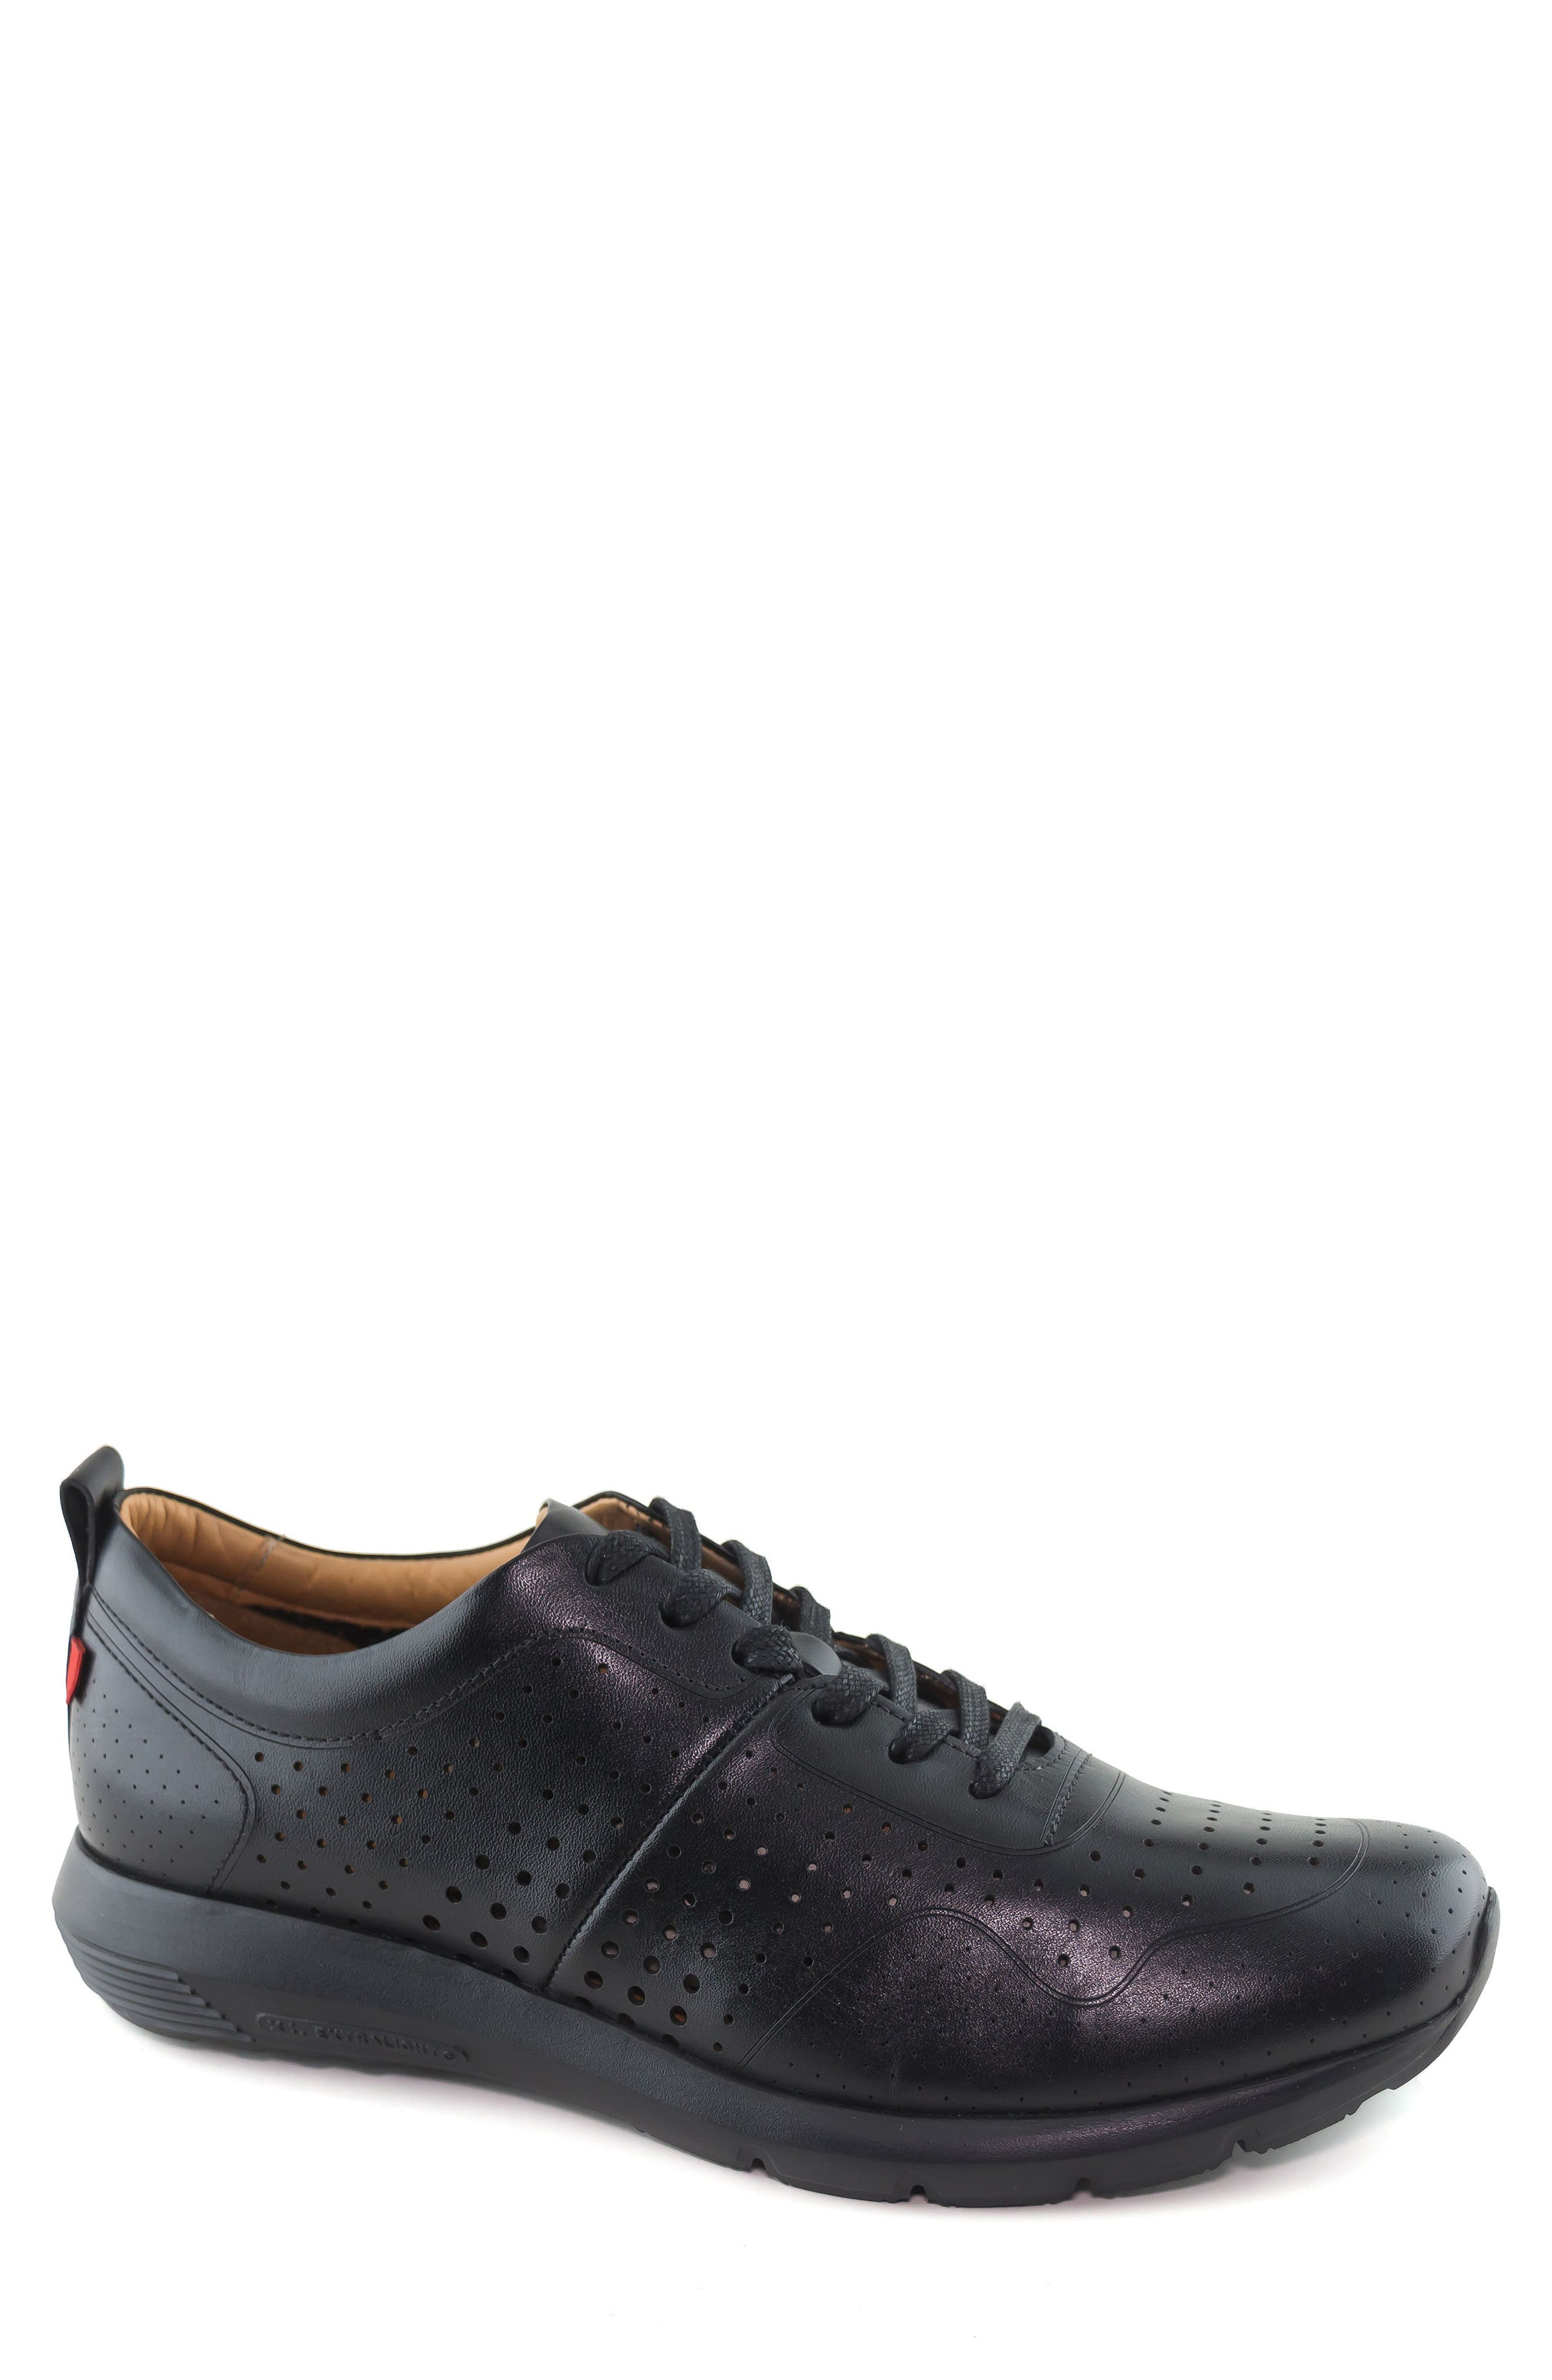 MARC JOSEPH NEW YORK, Grand Central Perforated Sneaker, Main thumbnail 1, color, BLACK